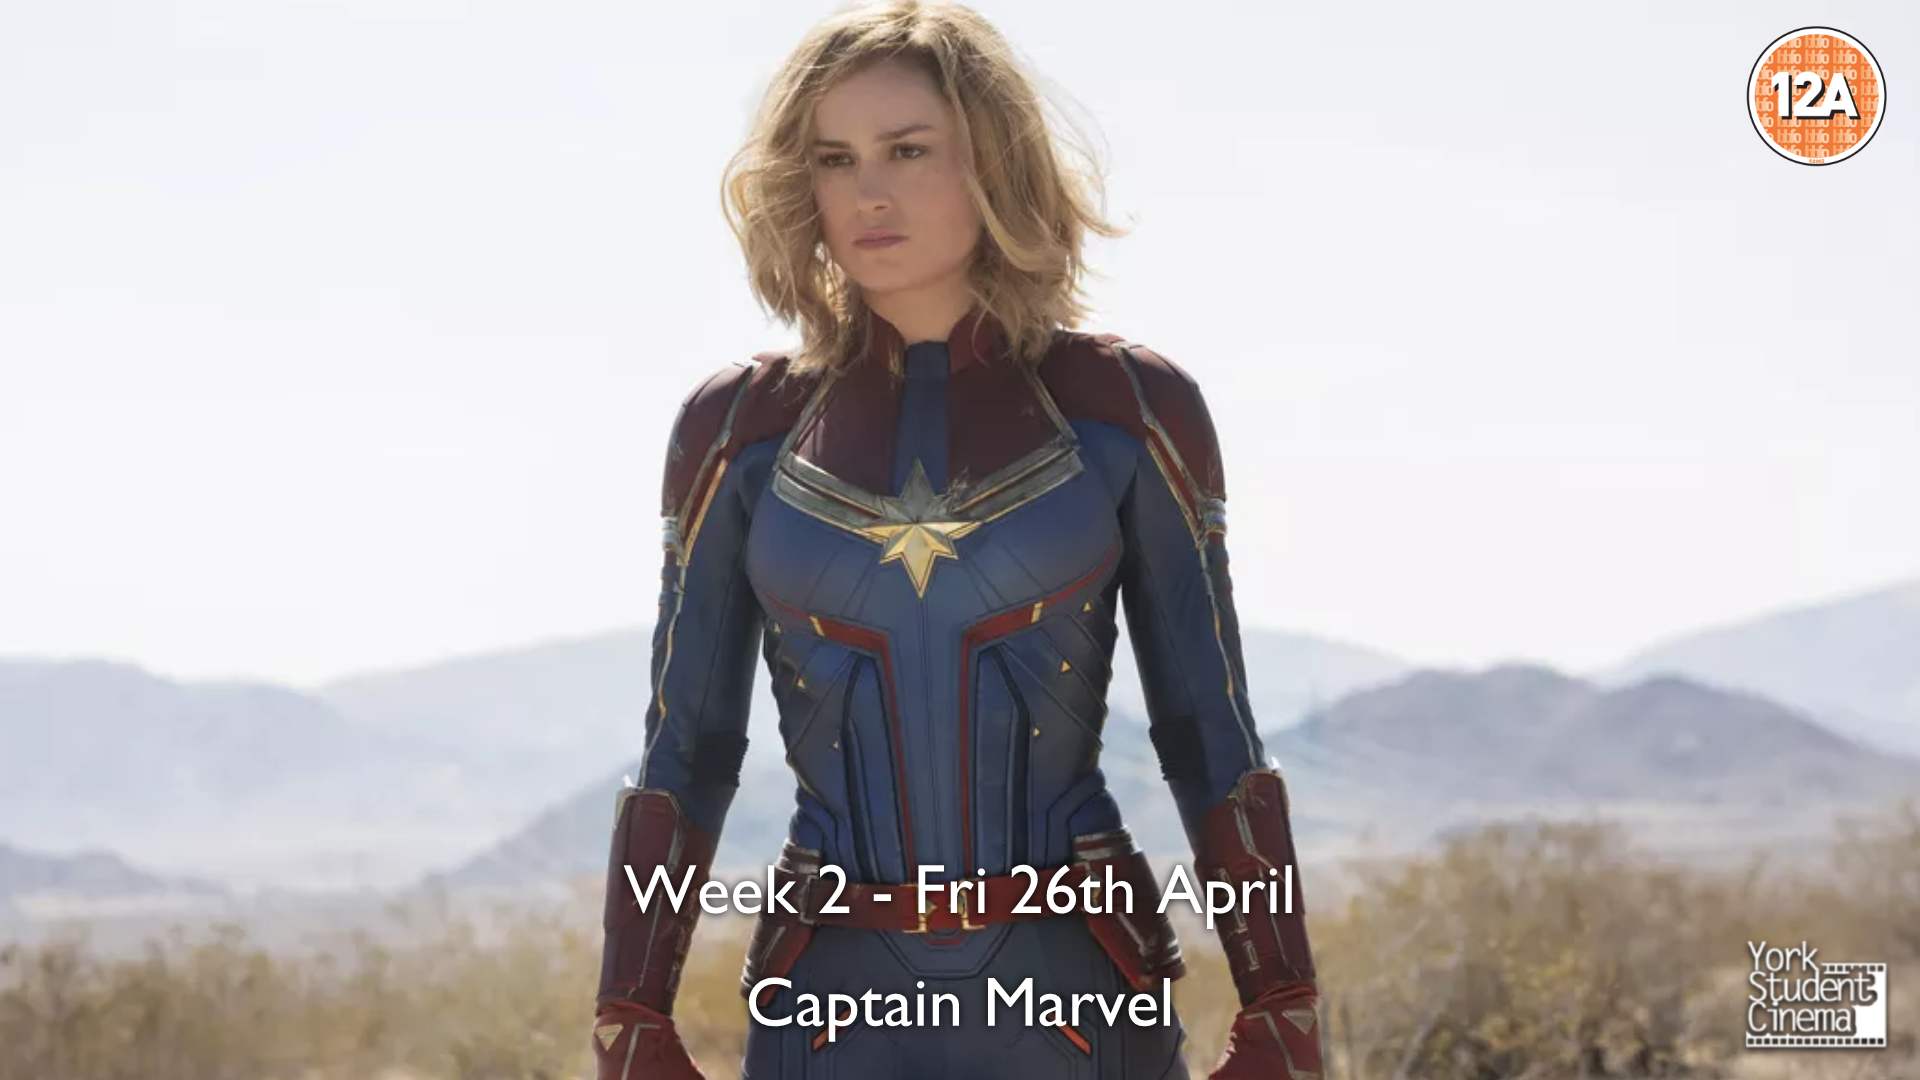 YSC Screening of Captain Marvel